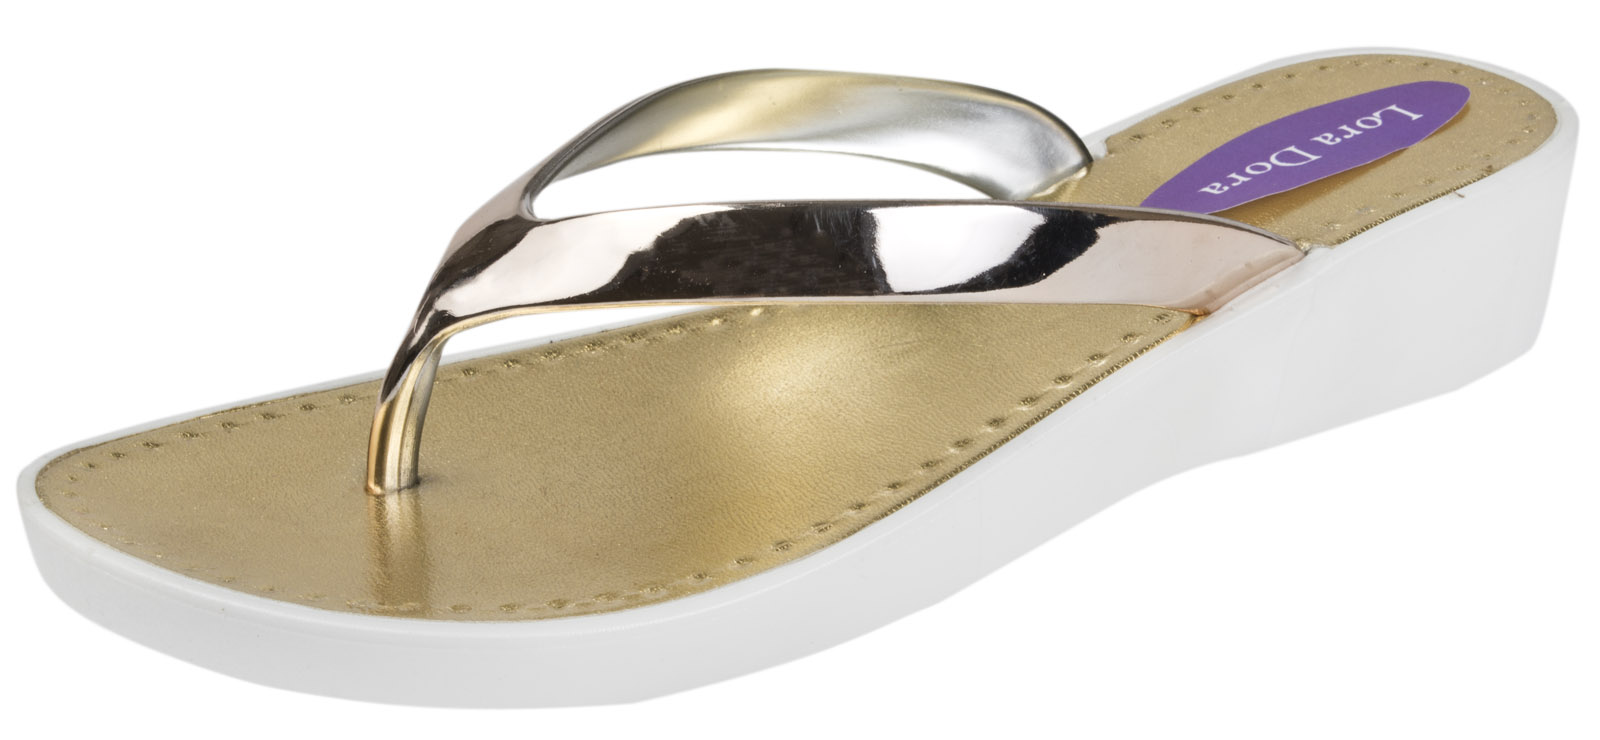 Womens Metallic Low Wedge Sandals Ladies Toe Post Flip Flops Summer Beach Shoes